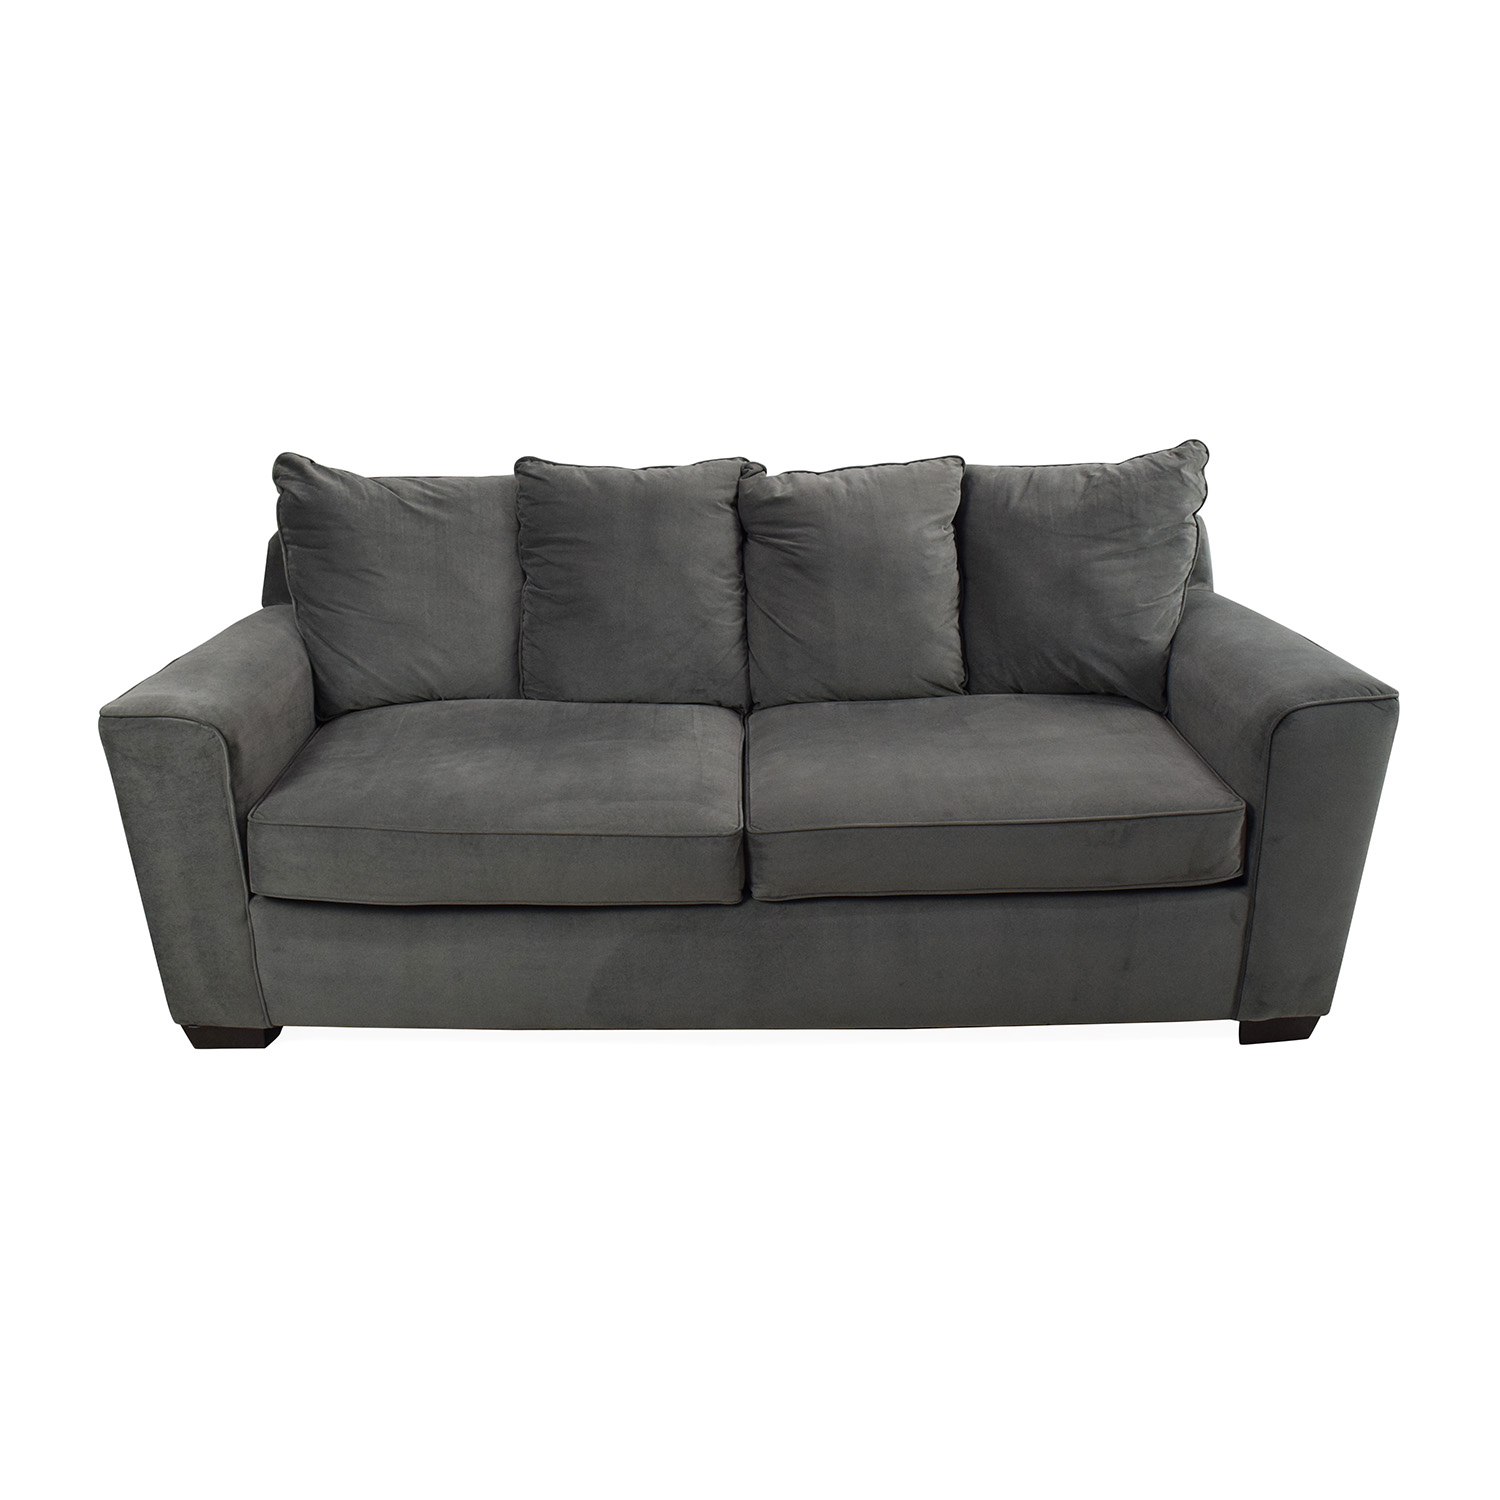 Jennifer Convertible Sofa Marvelous Leather